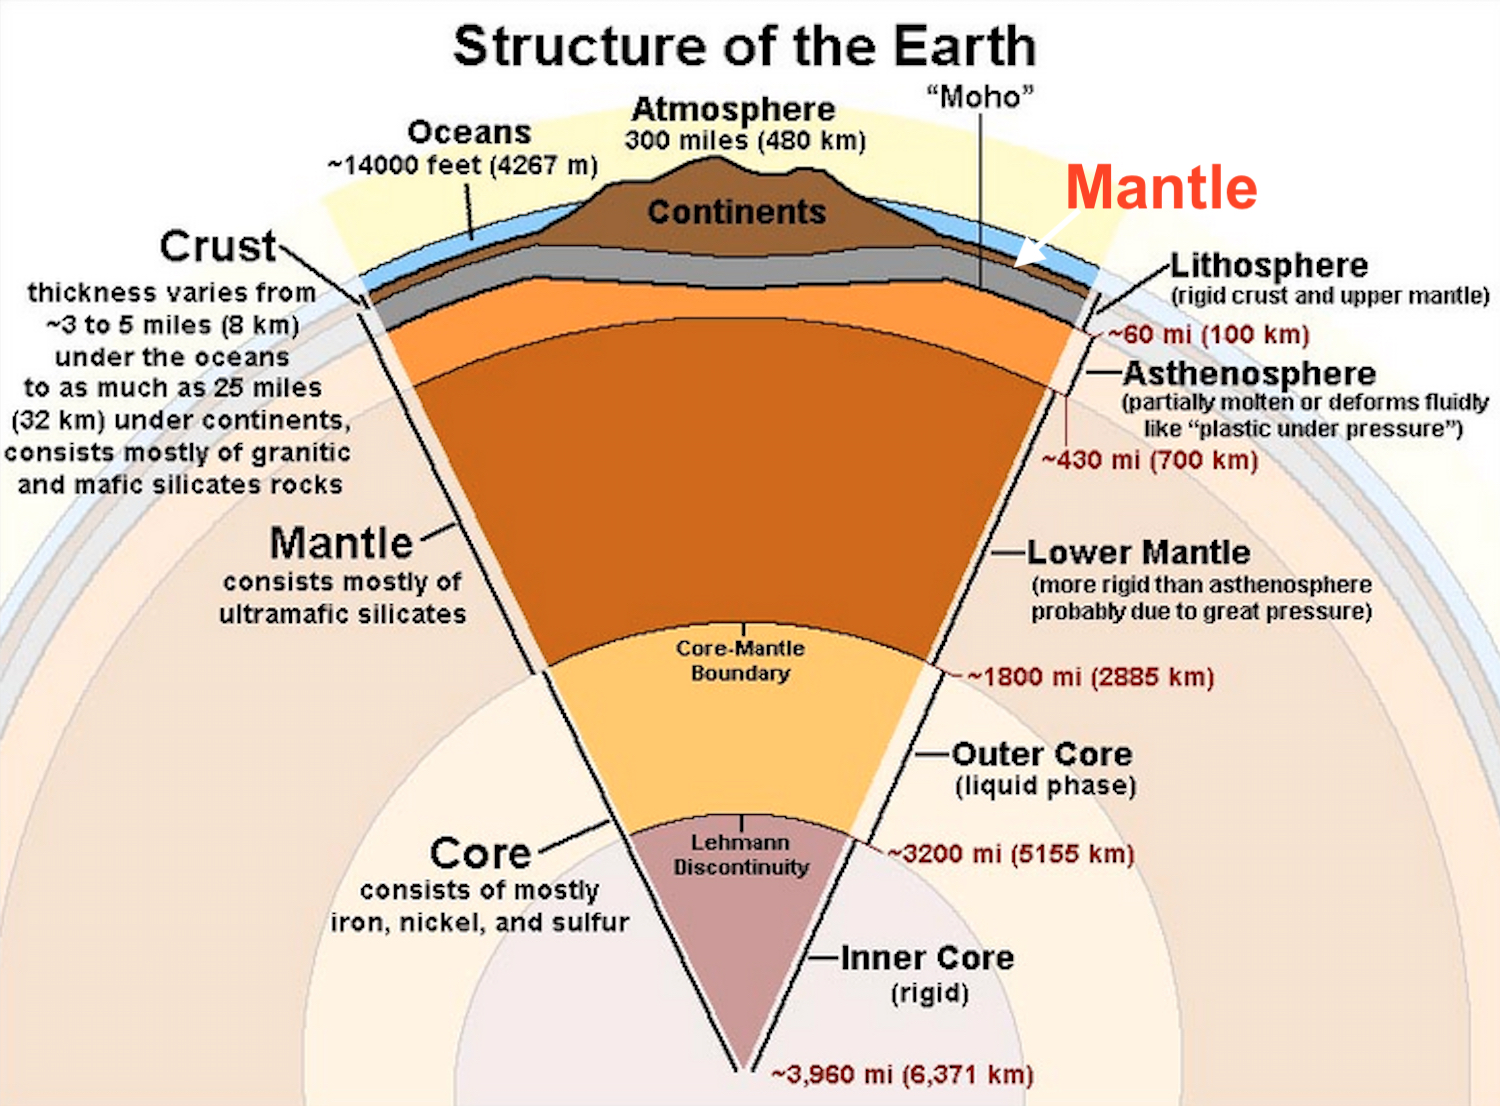 a study of the internal structure of the earth How have scientists determined the internal structure of the earth by the interpretation of seismic wave behavior and velocities, by computer modeling, by the laws of physics and gravitational field generation, through analysis of material from the moon, by observation of material from kimberlite.